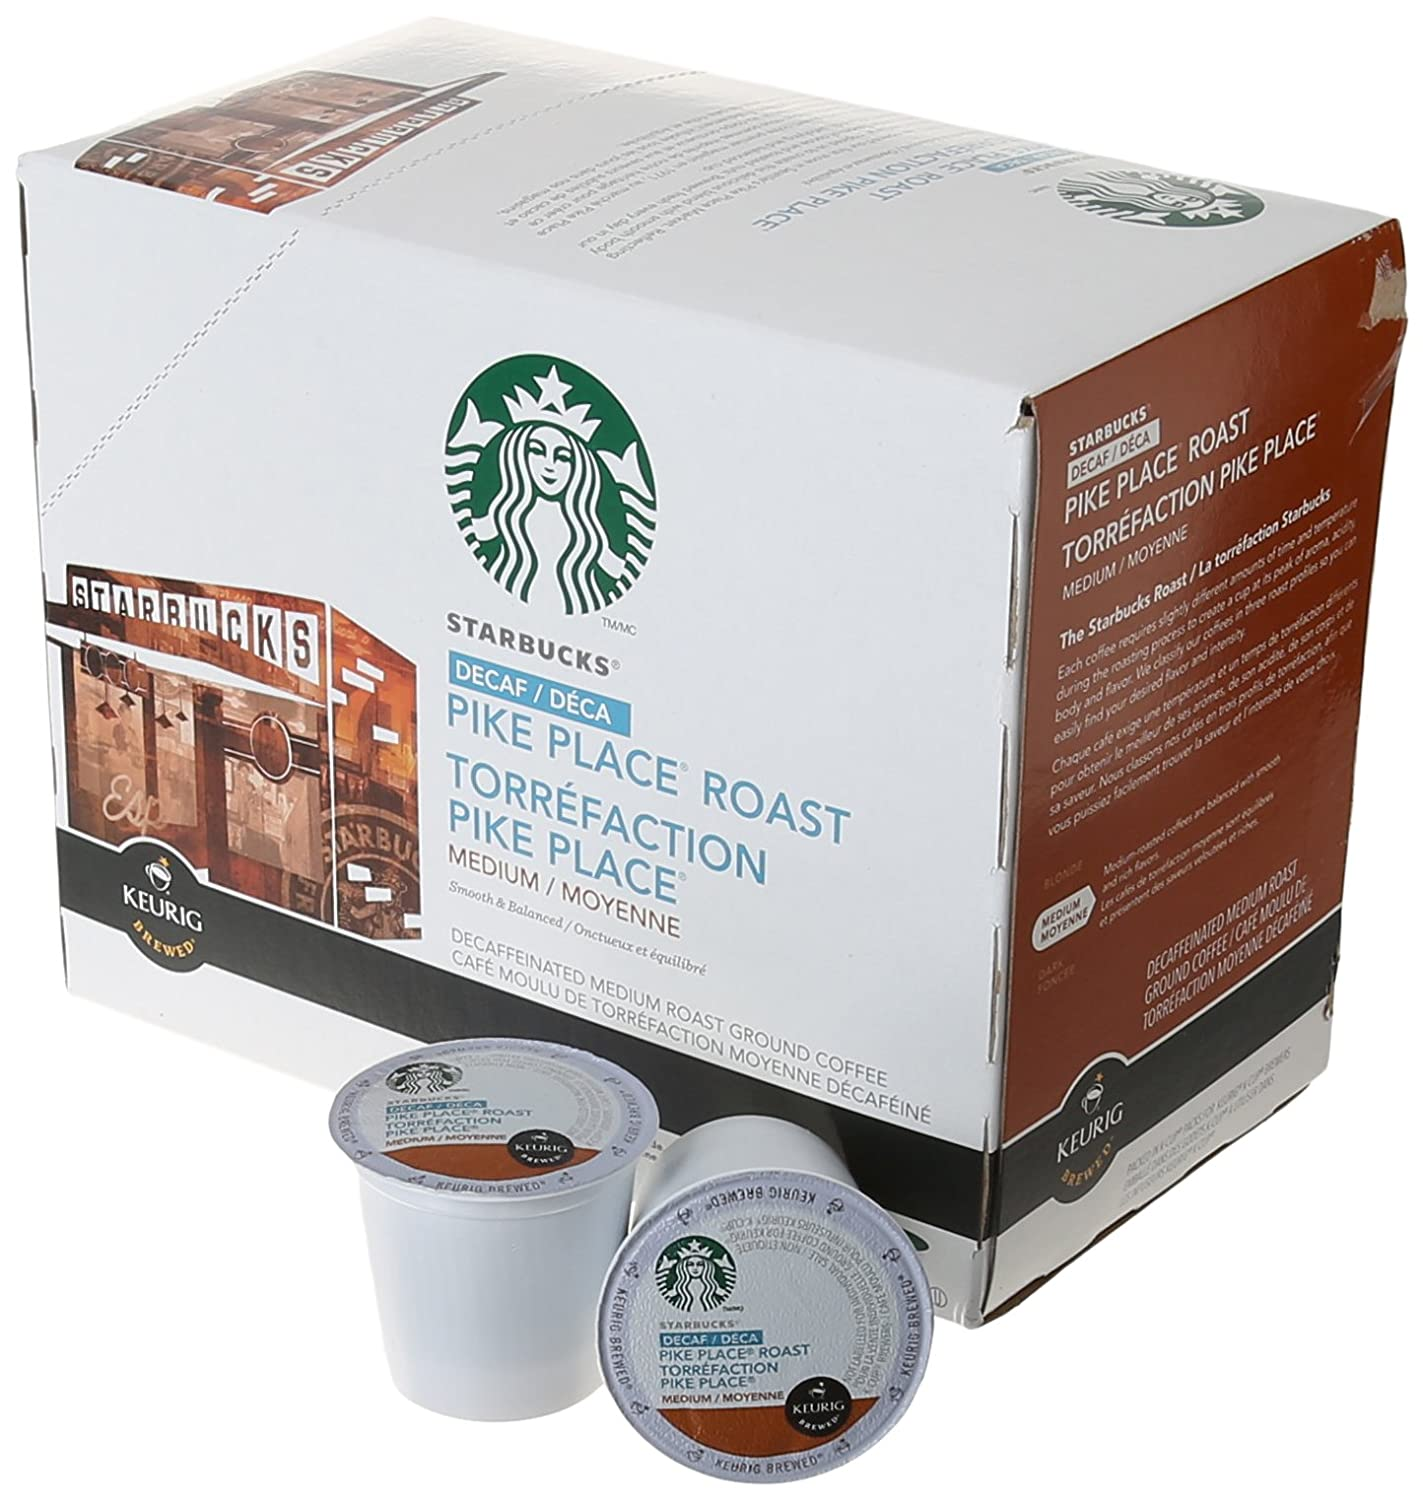 Starbucks Decaf Pike Place Roast K-Cups